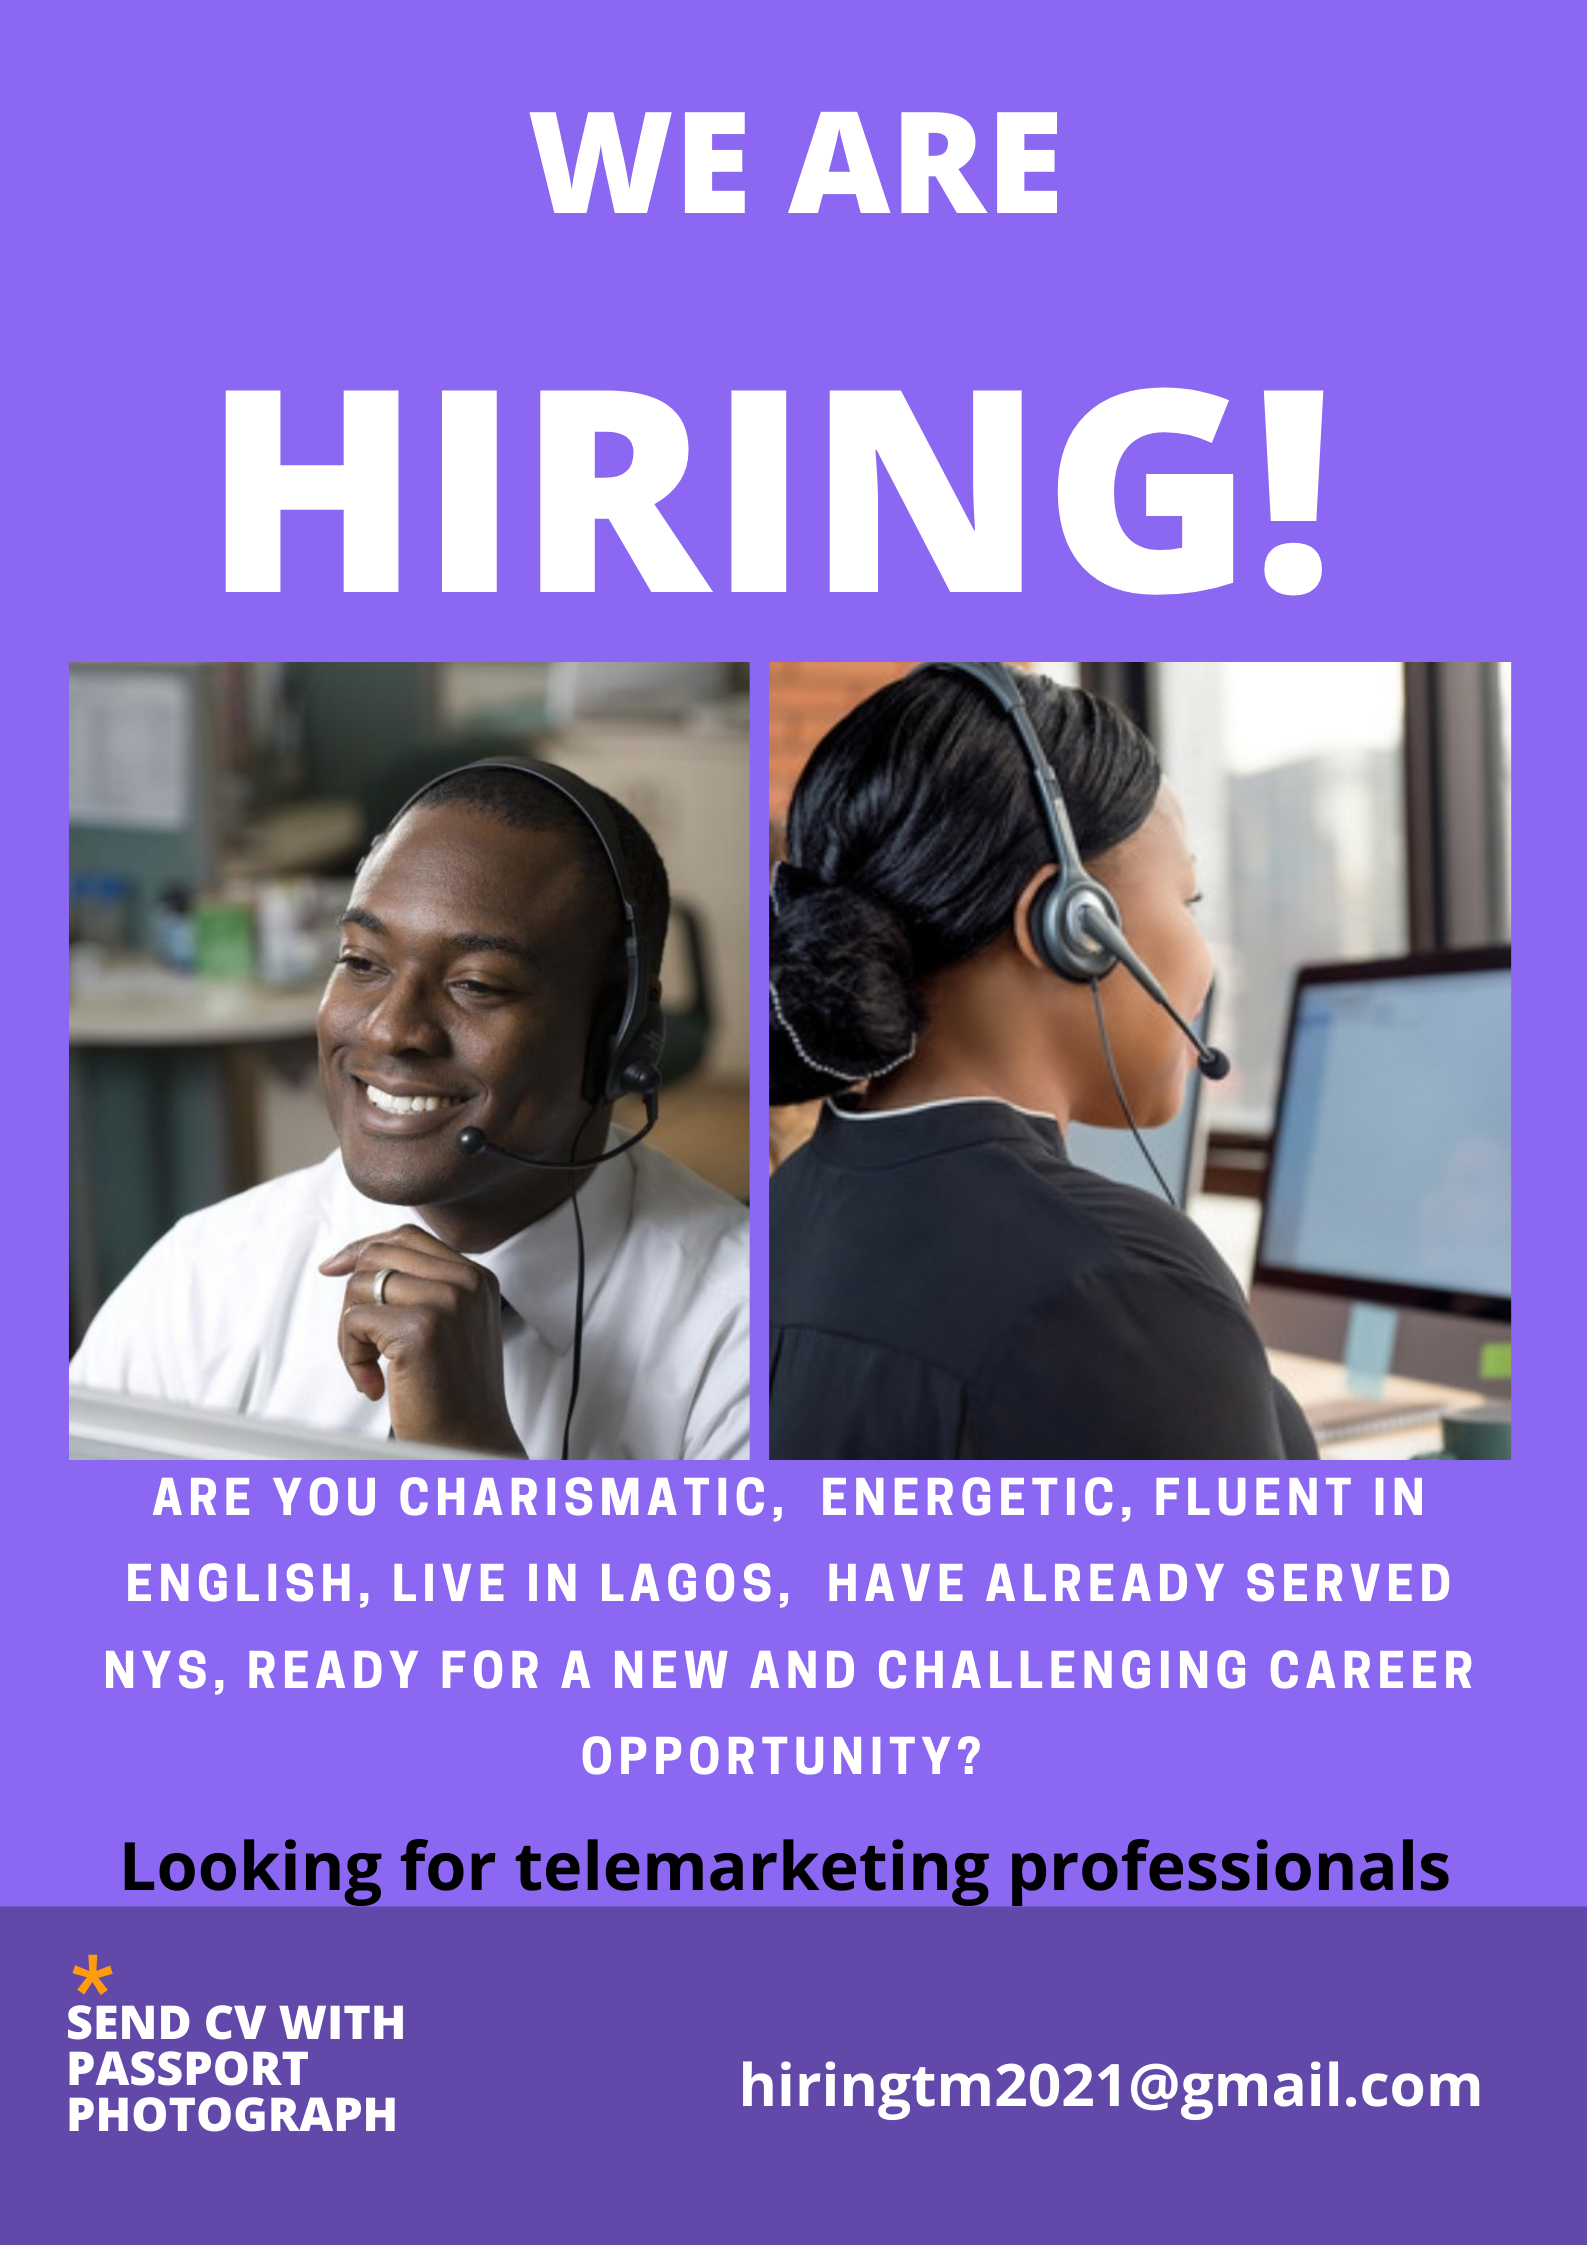 A Telemarketing company is hiring